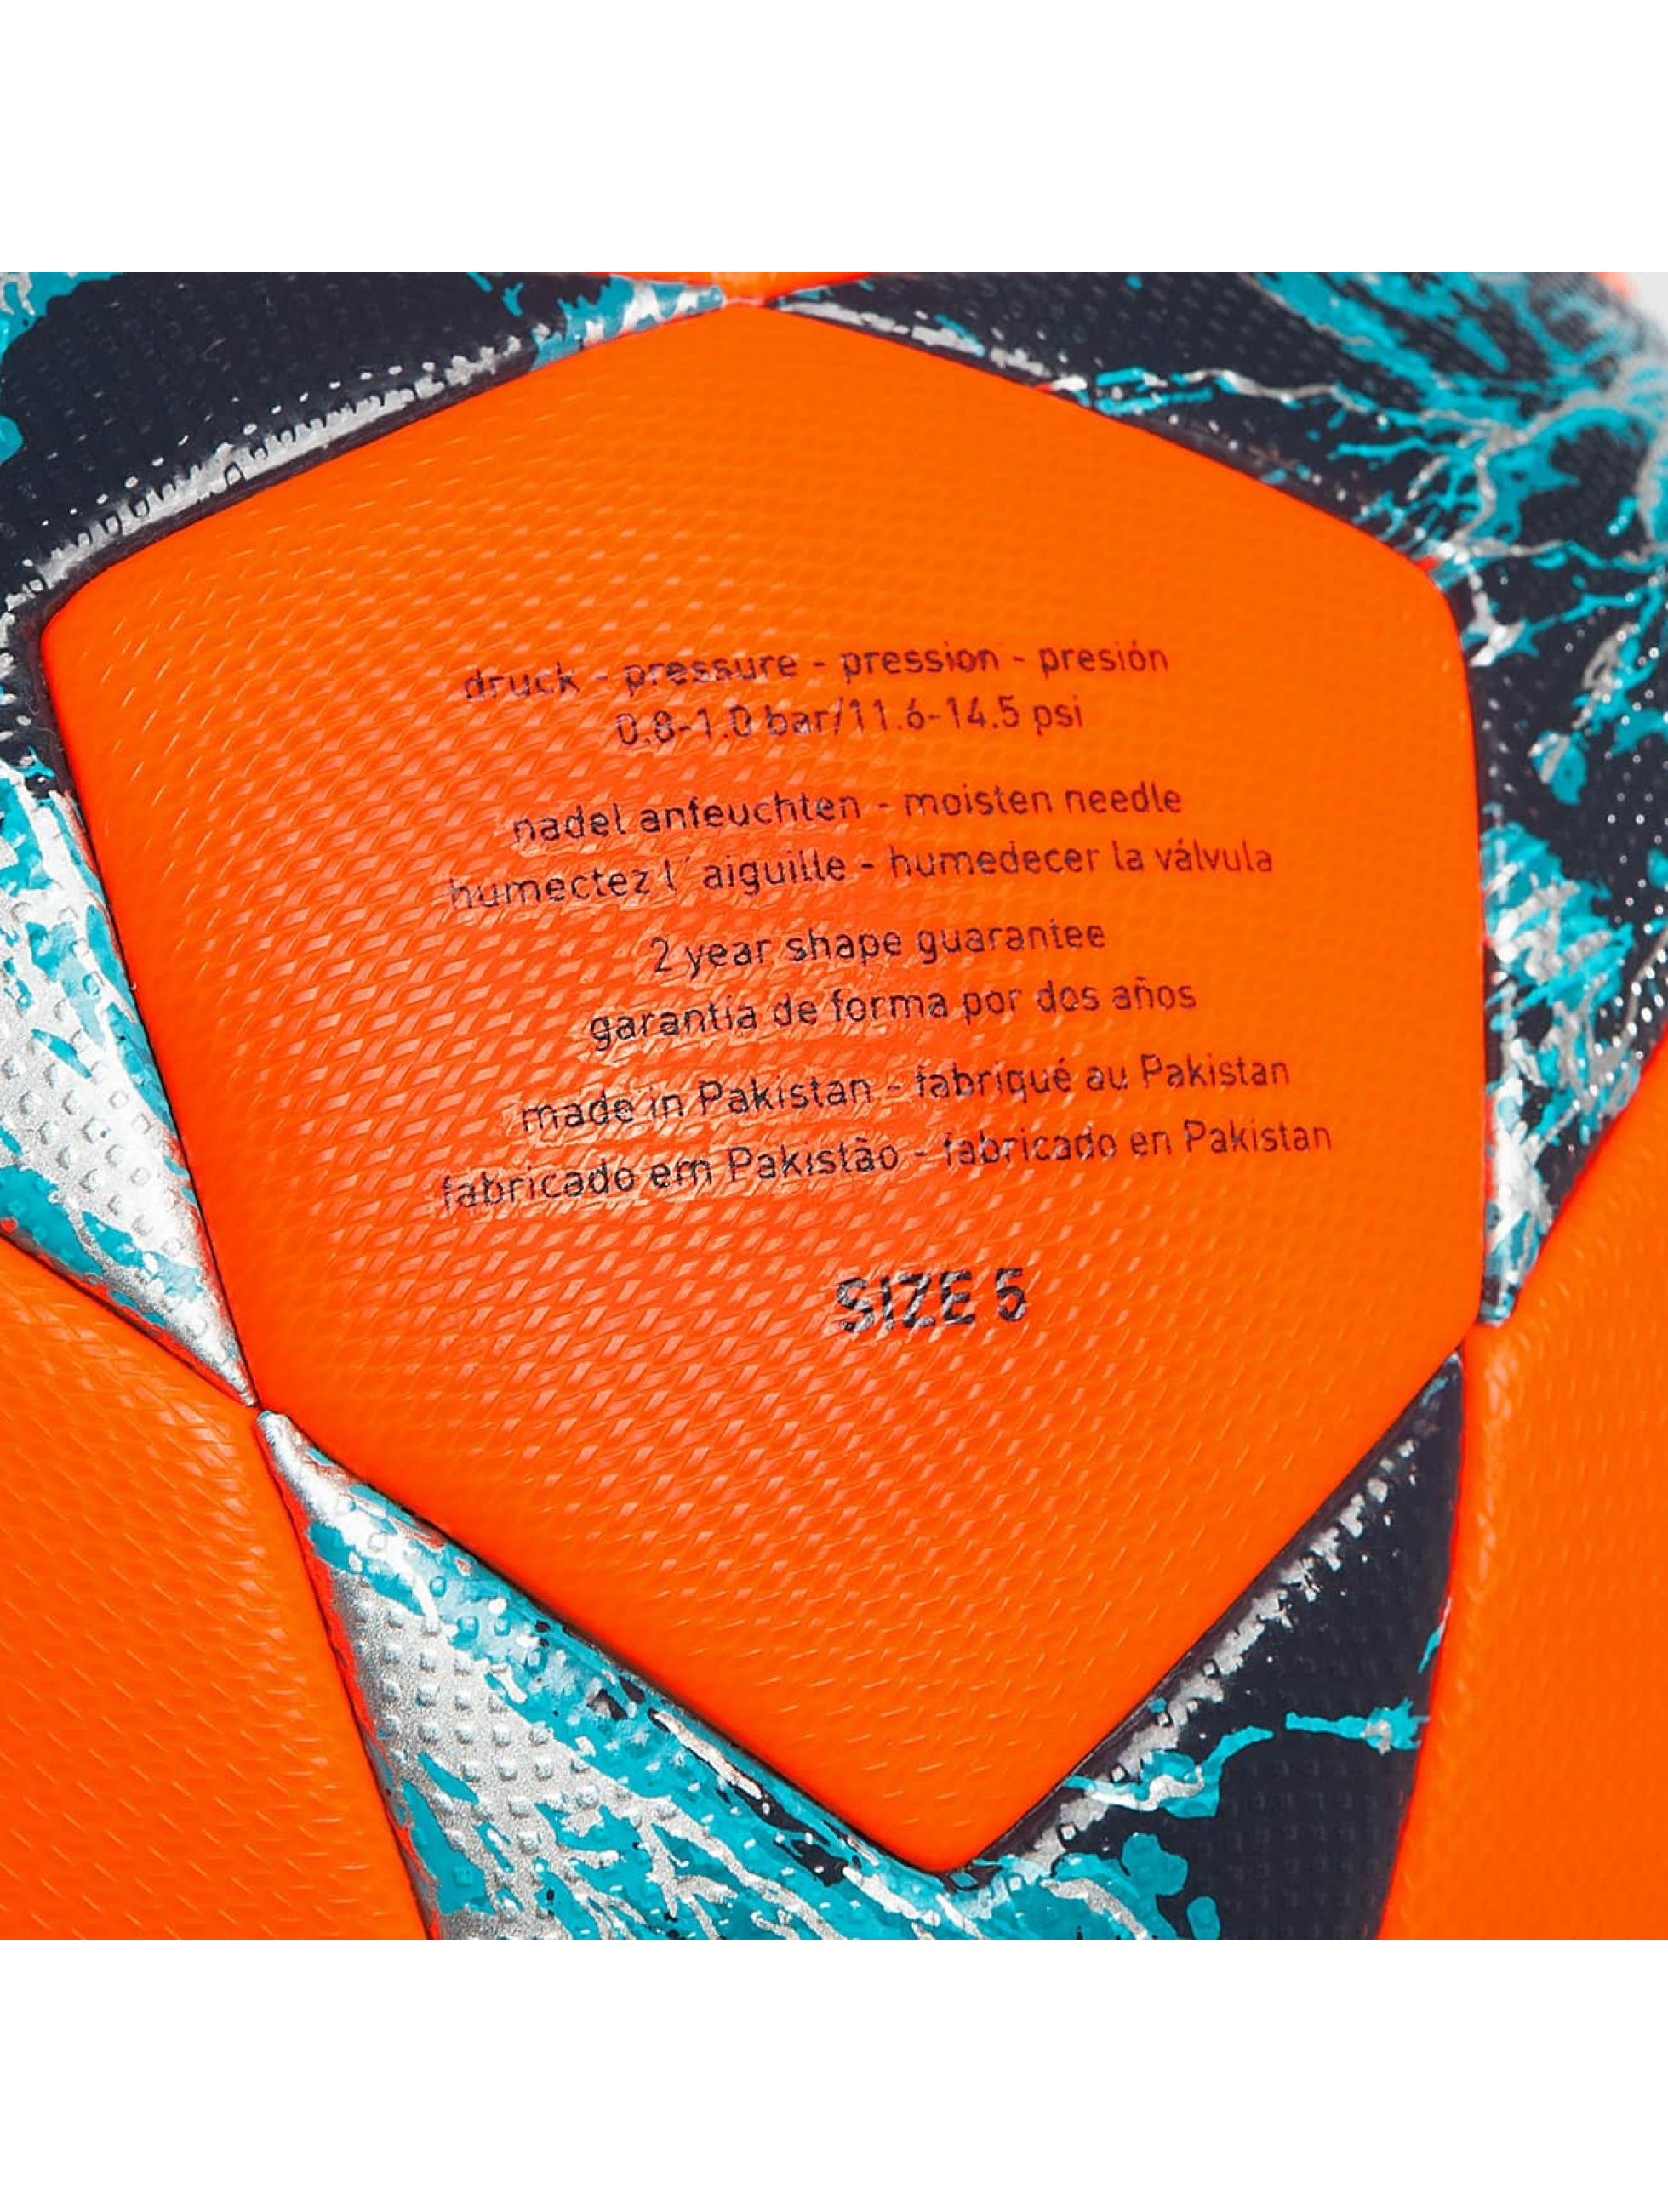 adidas originals Pallone Final 17 Offical Match arancio